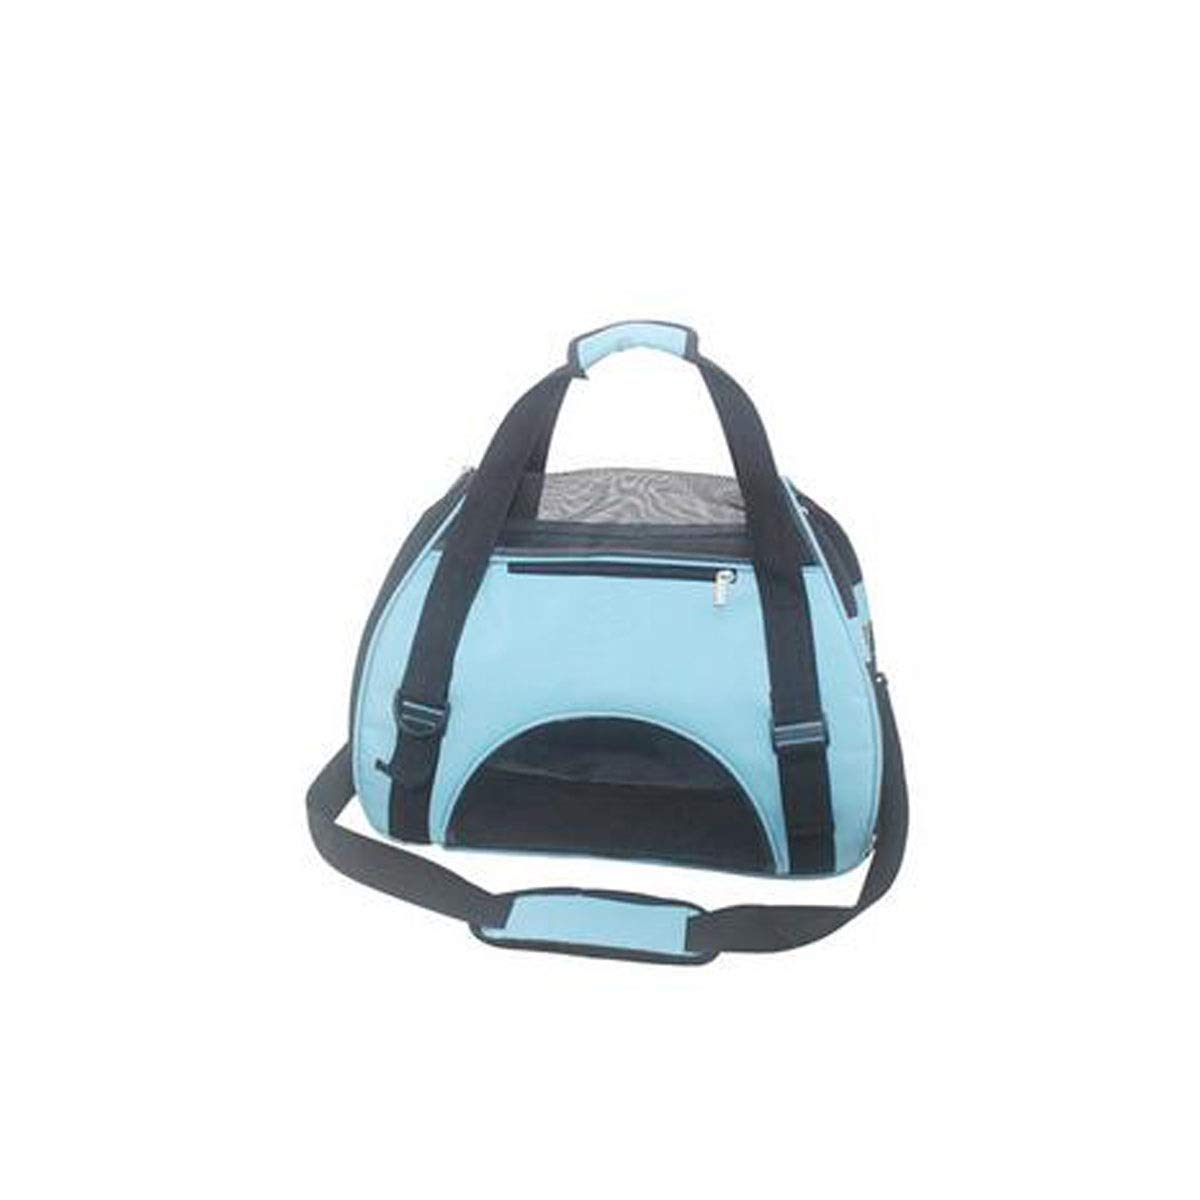 bluee Portable Tote, Soft Tote for Kittens and Dogs, Premium Zip, Lock and Wool Pad. Designed for Cycling, Travel, Hiking and Entertainment (color   bluee)